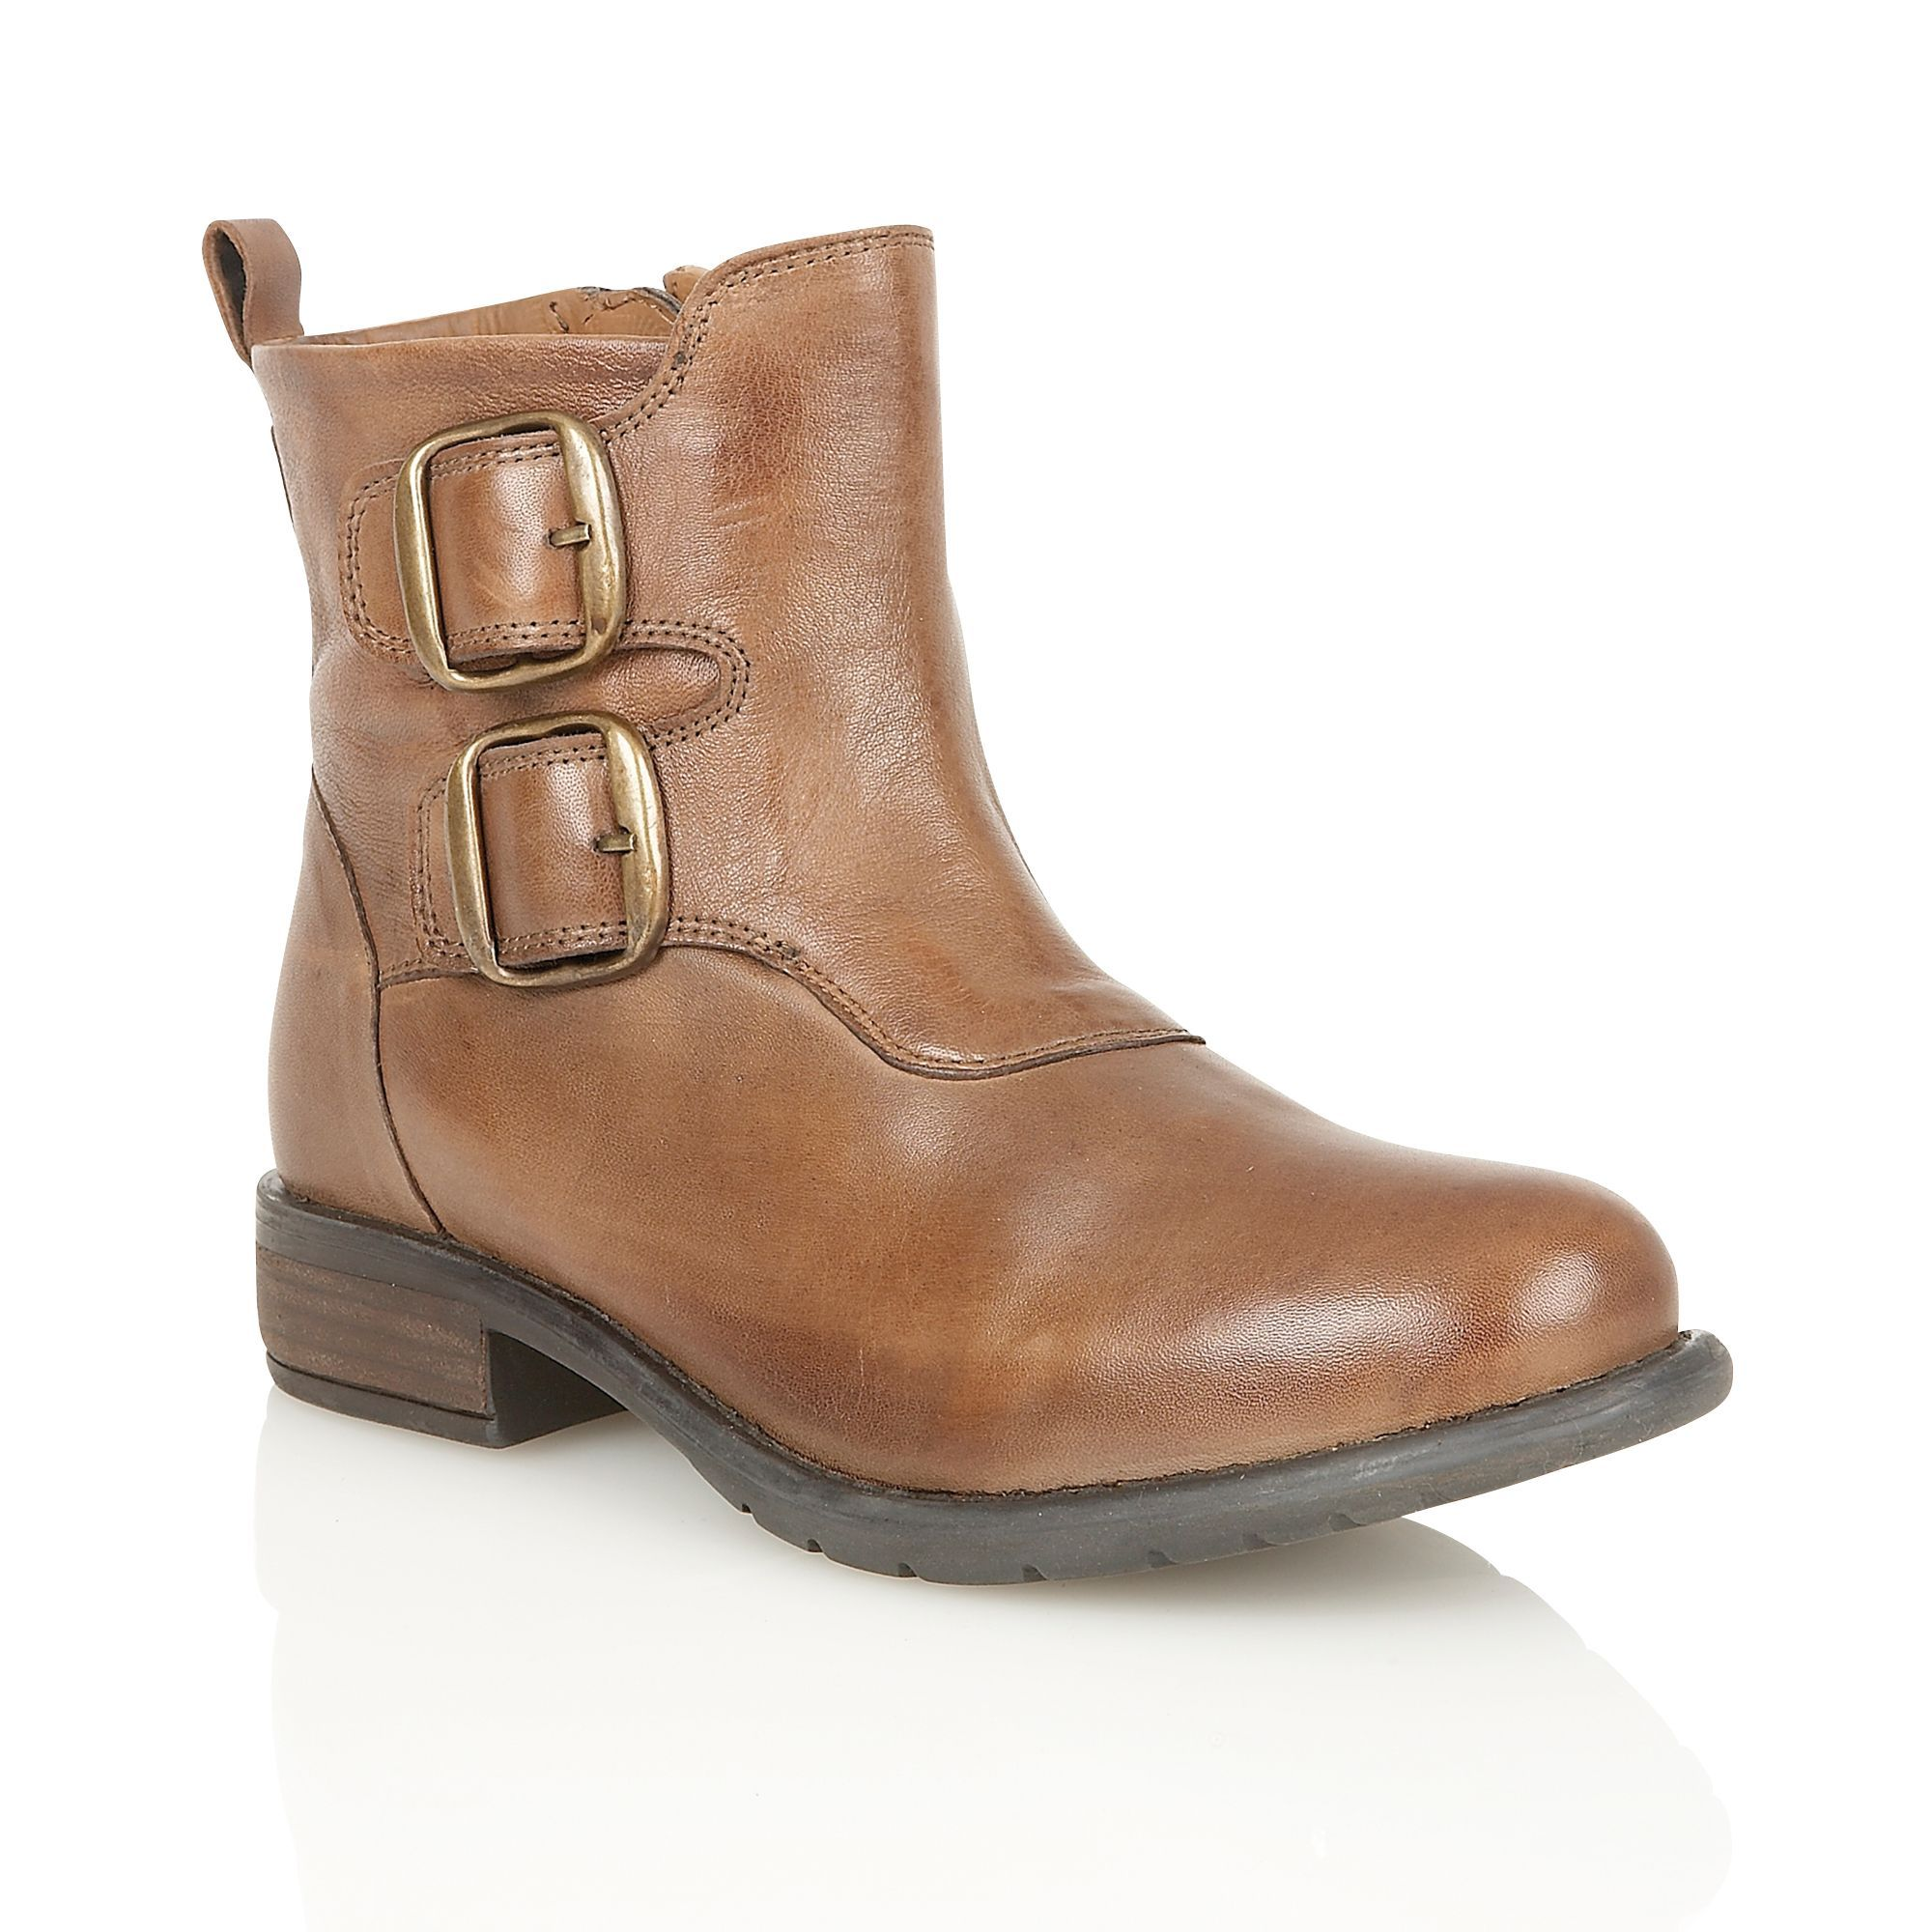 Lotus Jodie ankle boots, Tan